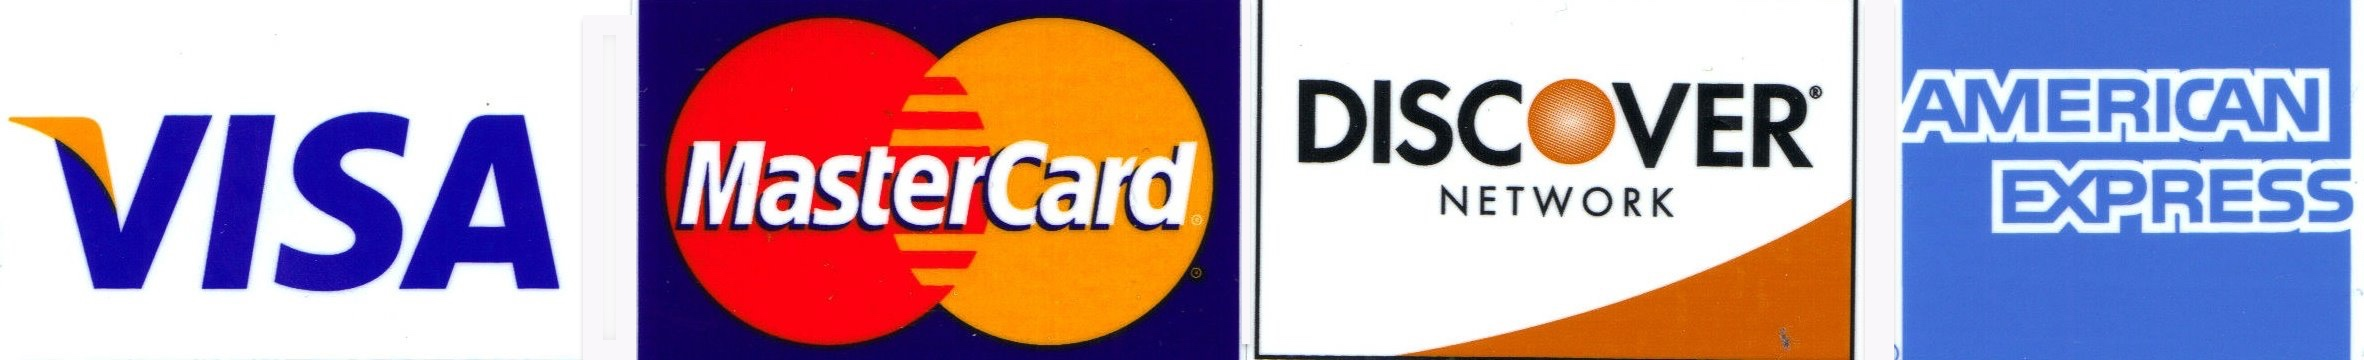 Accepted Credit Cards Image